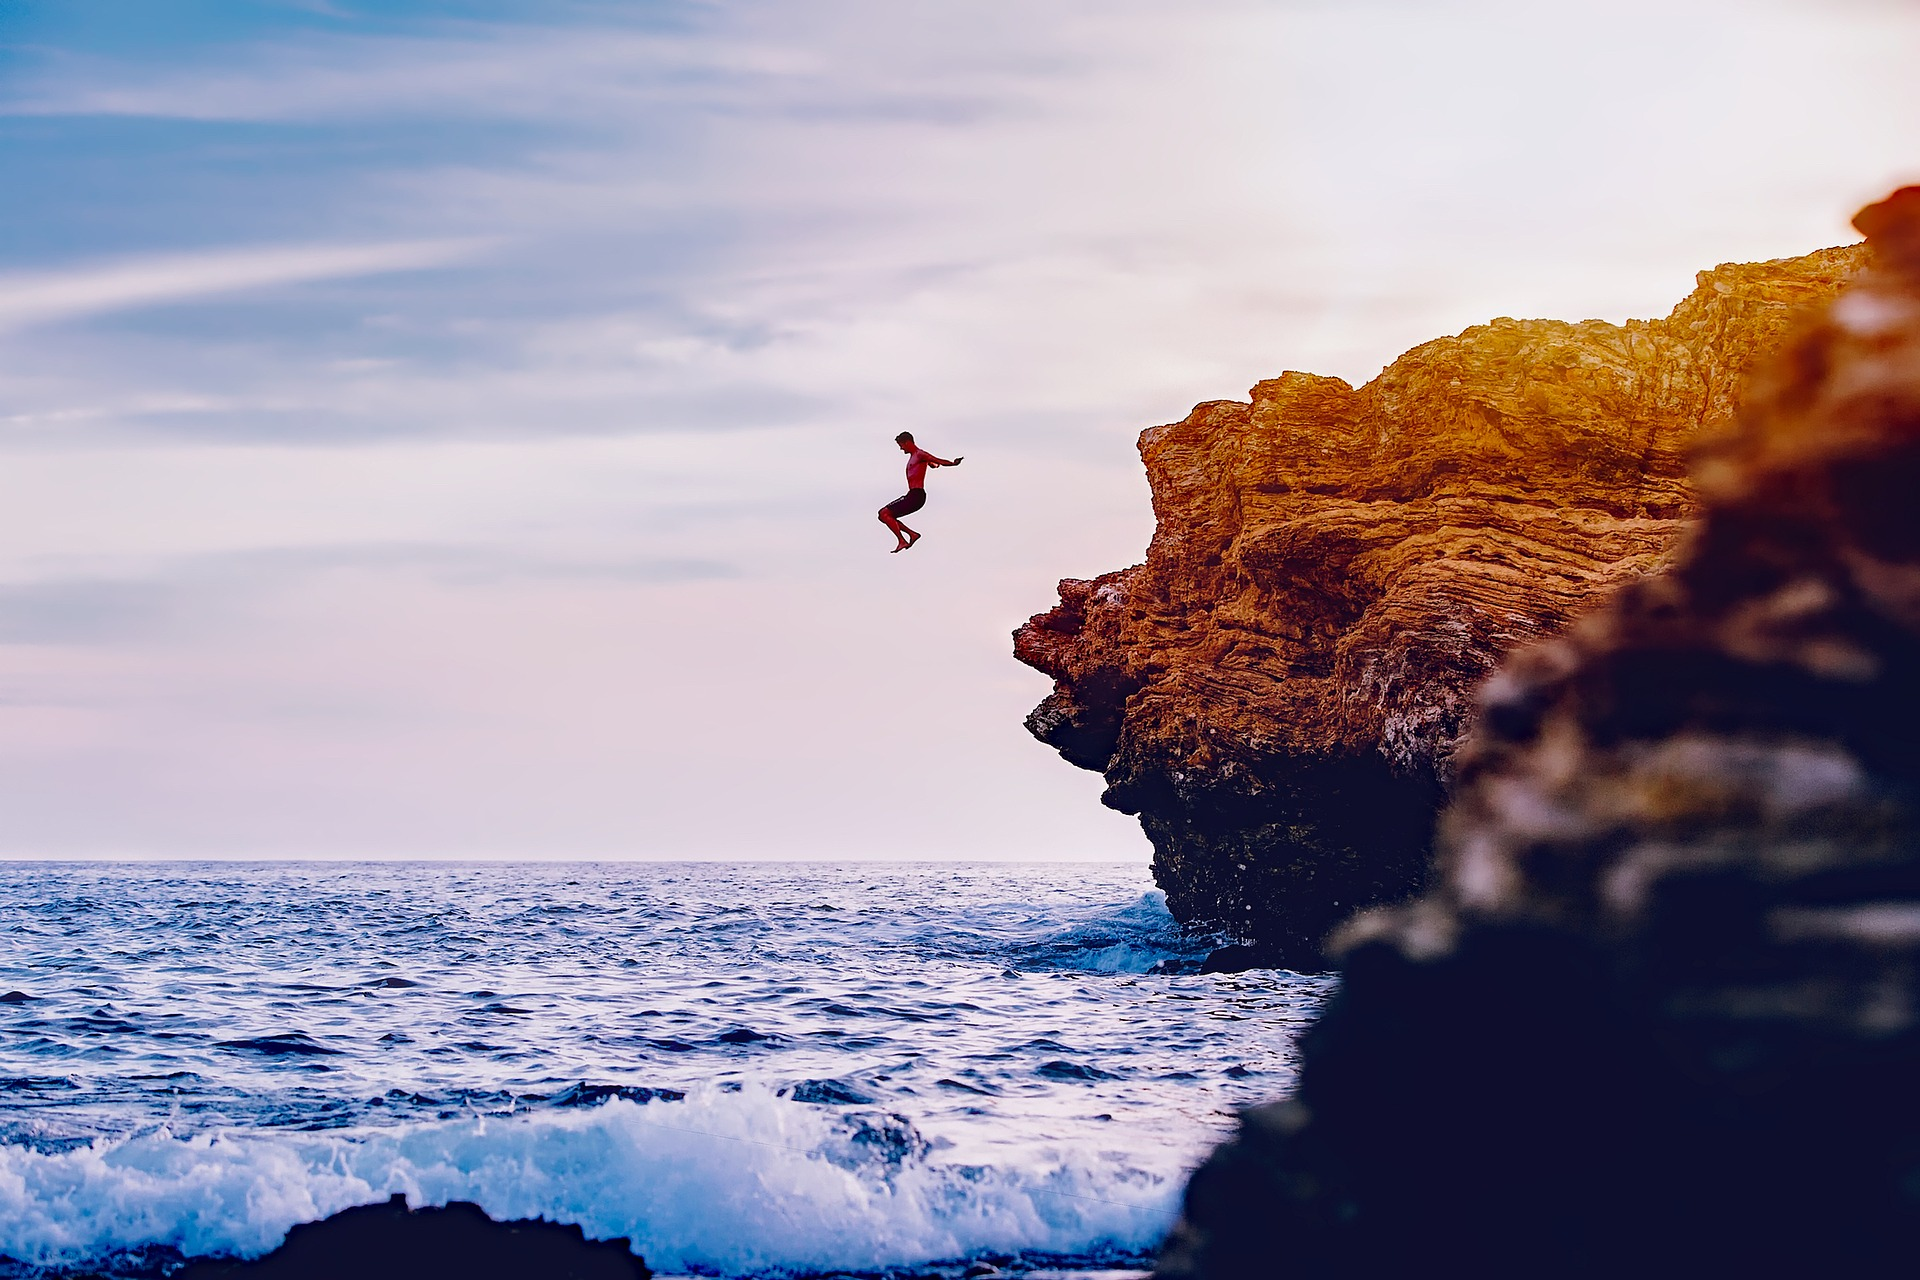 Cliff diving banned costa news - Highest cliff dive ever ...